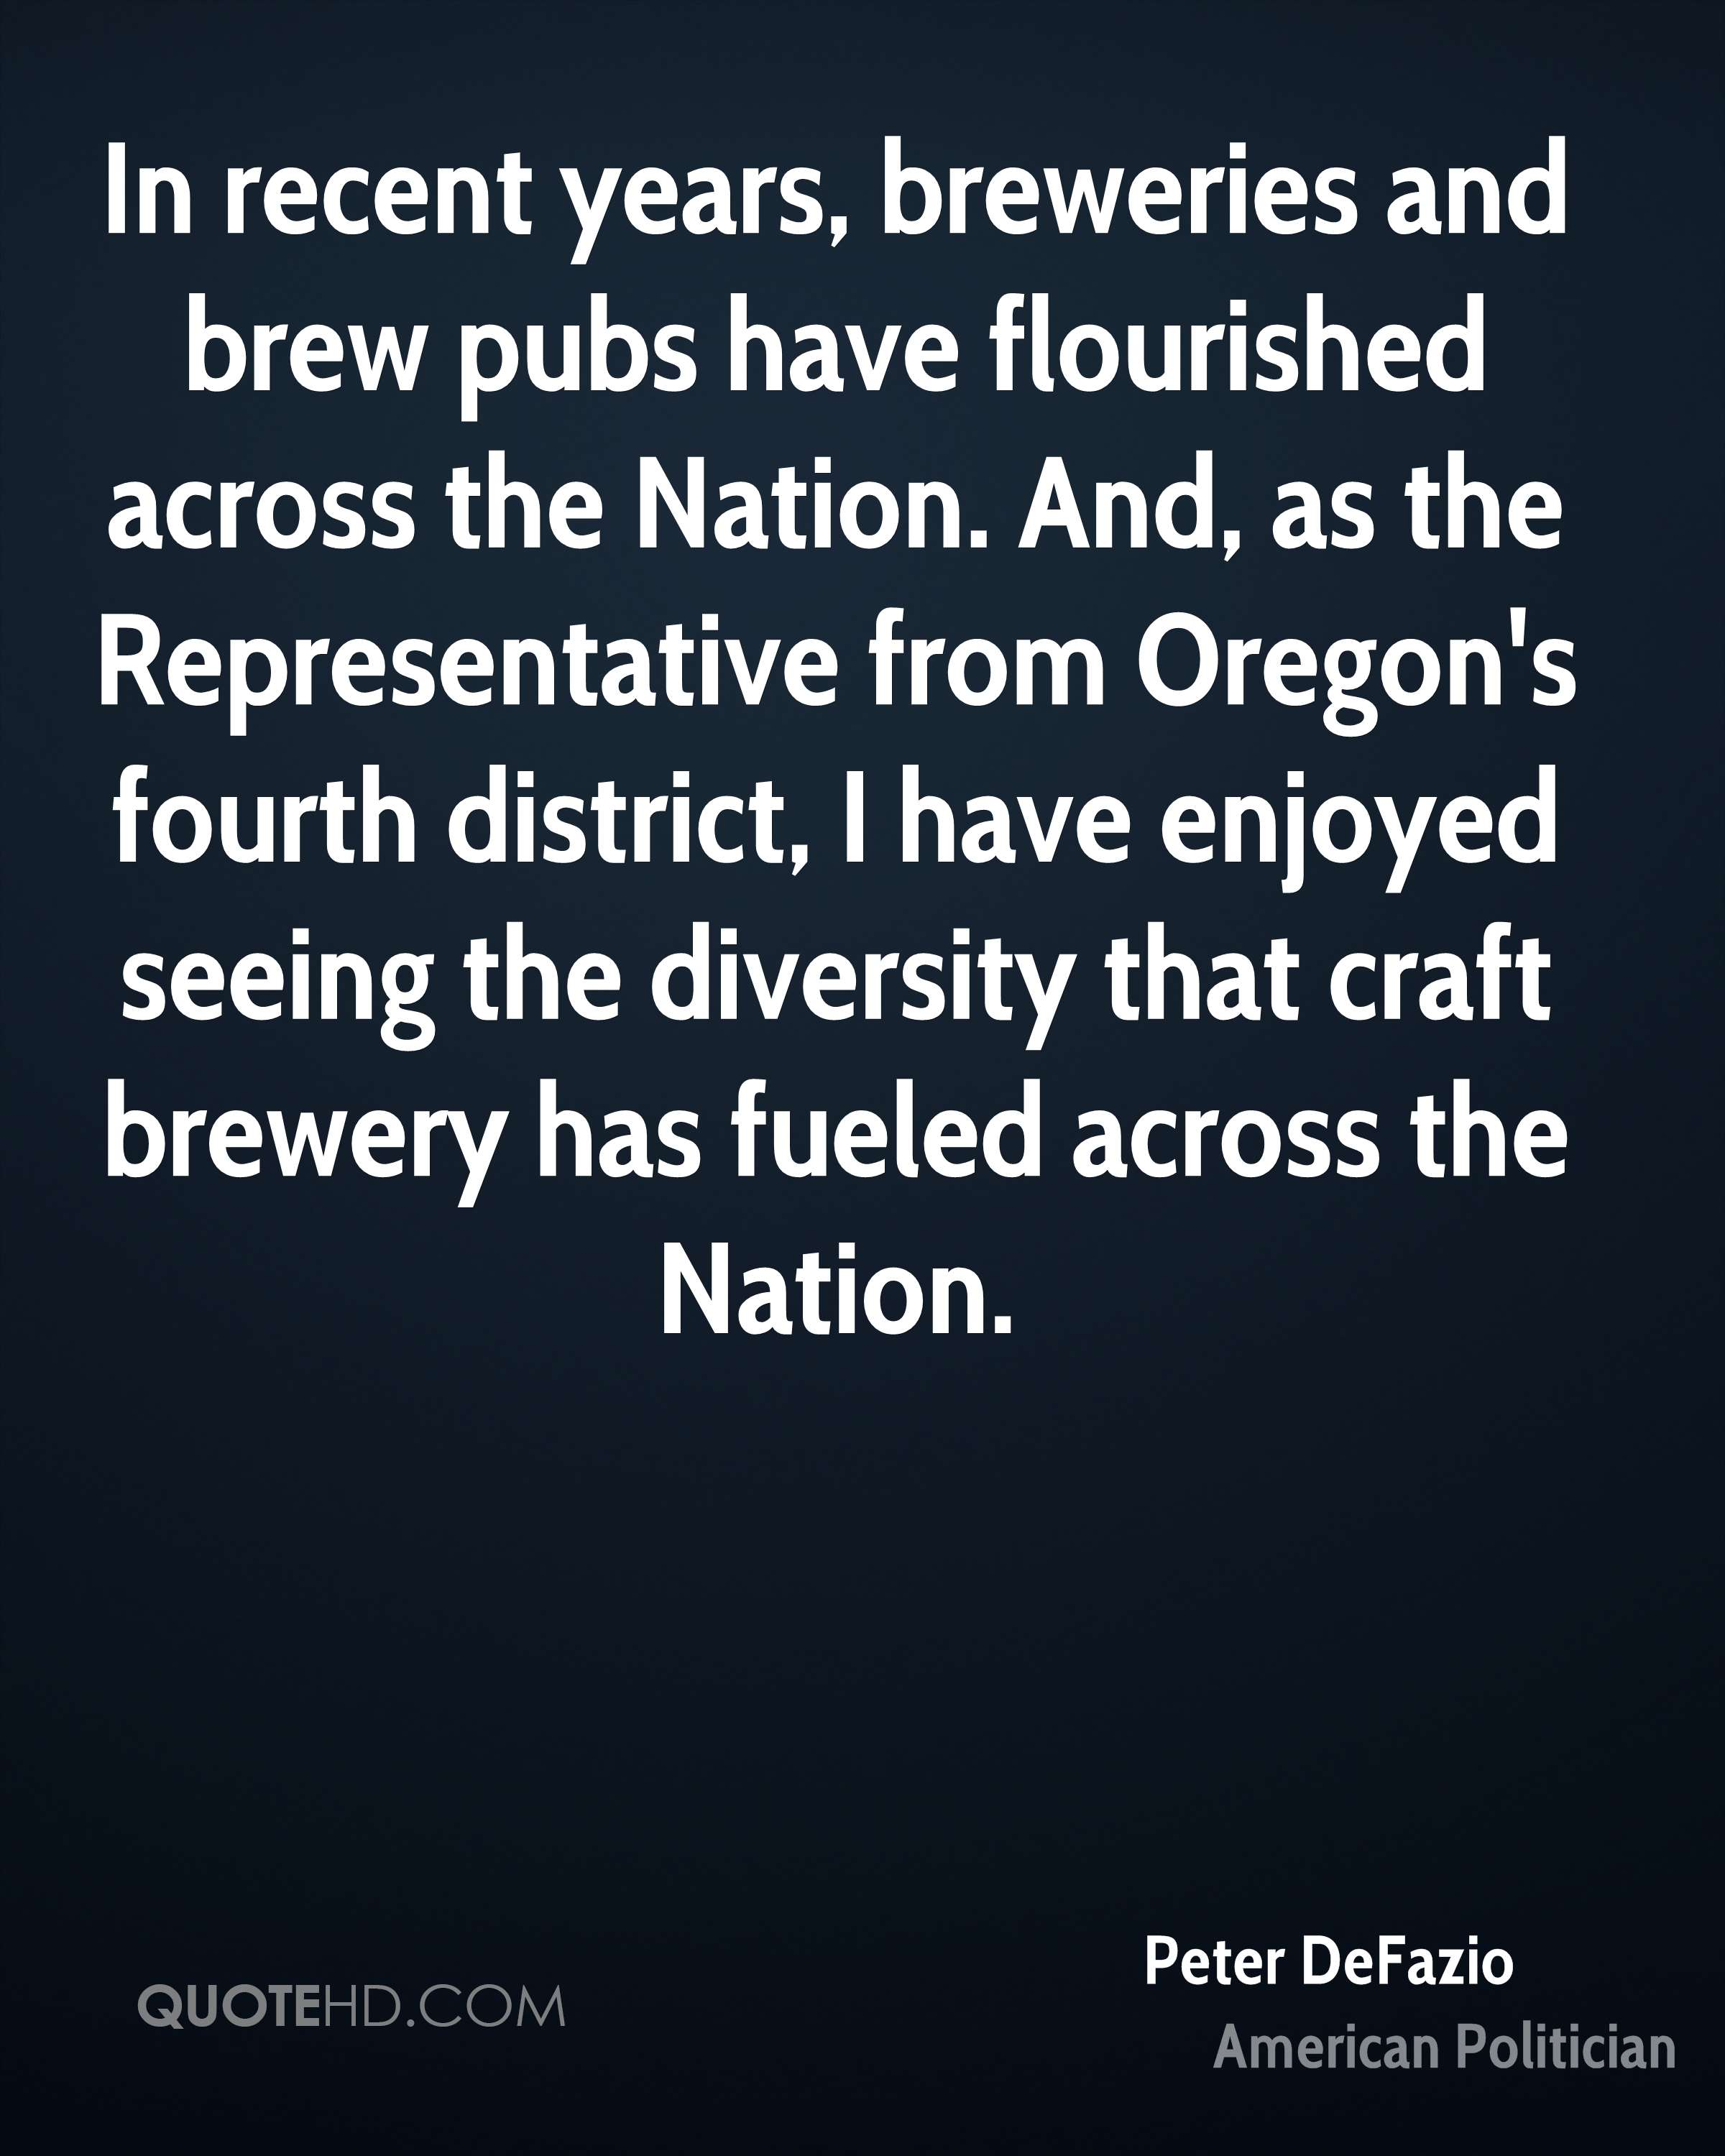 In recent years, breweries and brew pubs have flourished across the Nation. And, as the Representative from Oregon's fourth district, I have enjoyed seeing the diversity that craft brewery has fueled across the Nation.